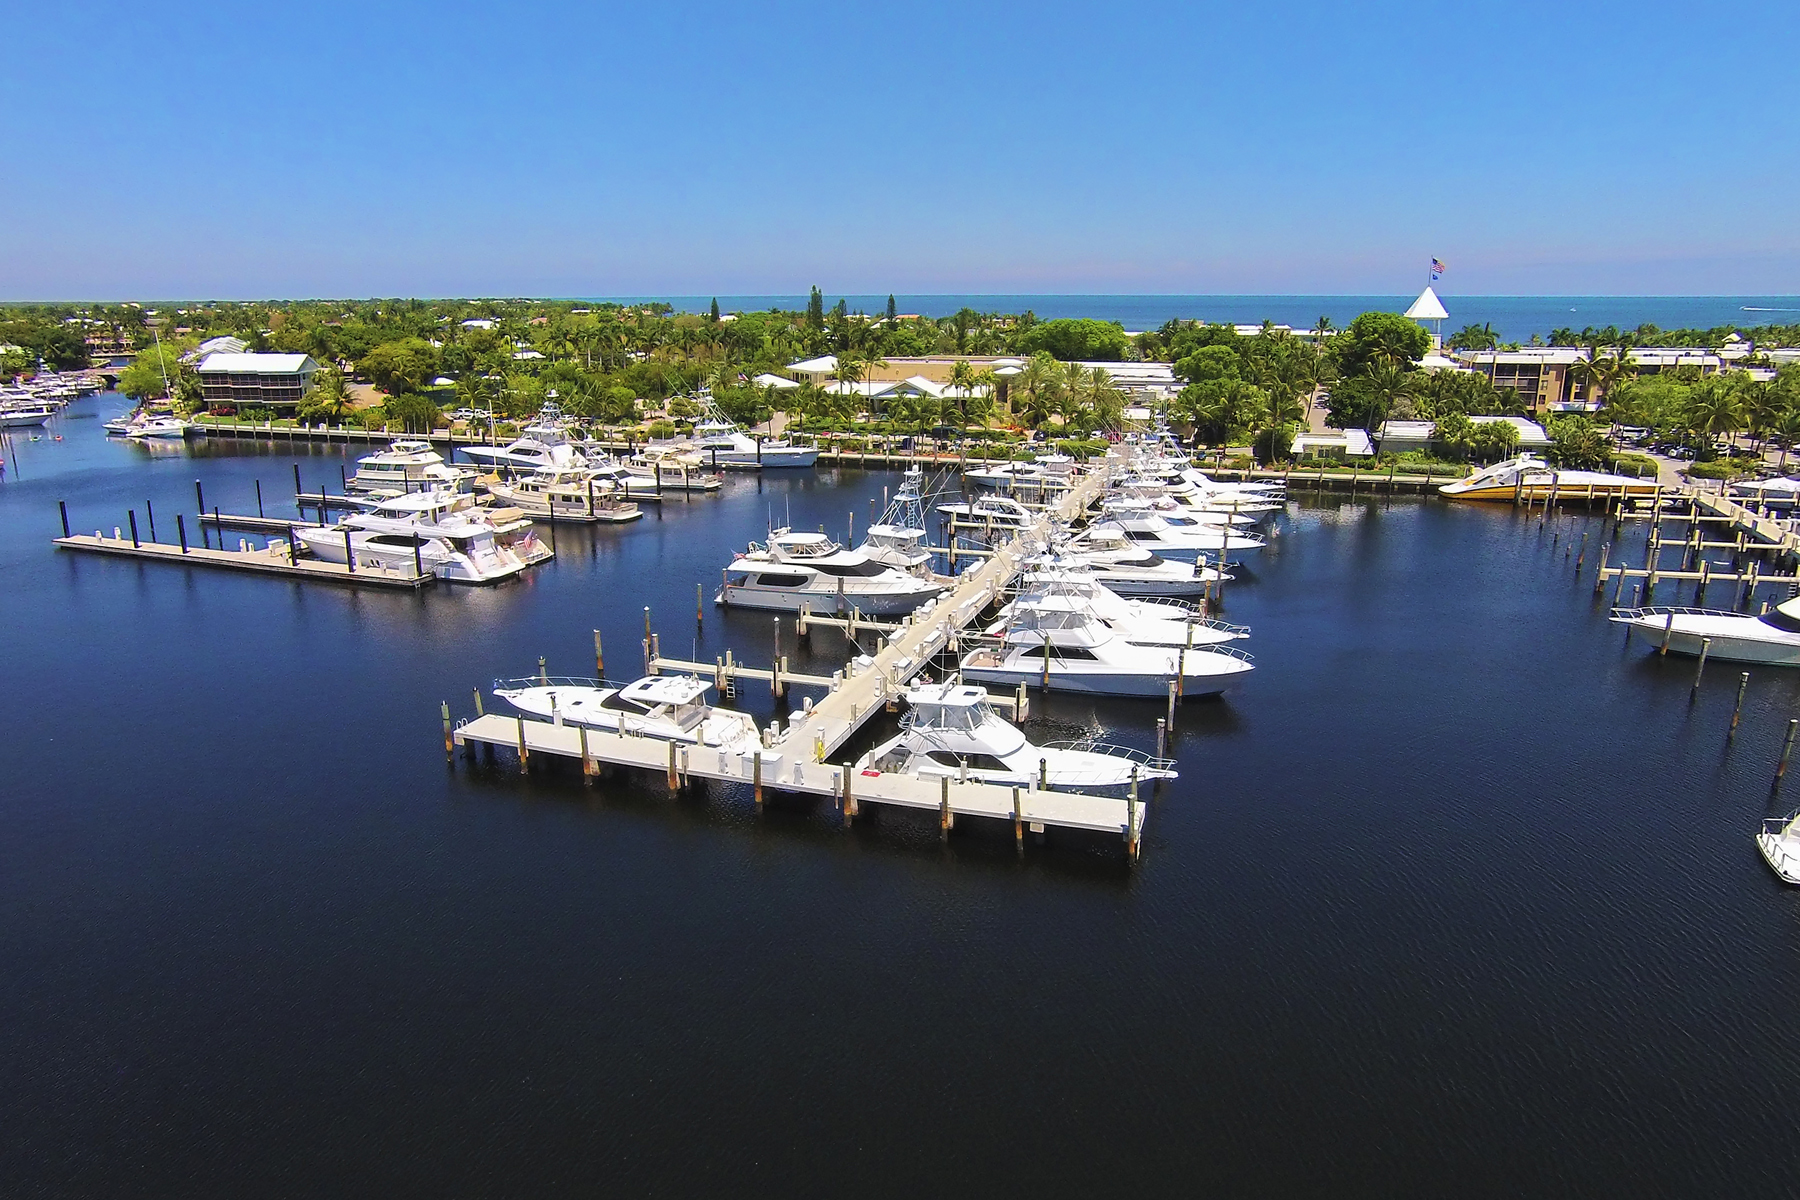 Additional photo for property listing at Ocean Reef Marina Offers Full Yacht Services 201 Ocean Reef Dr. FS-25 拉哥, 佛罗里达州 3303 美国